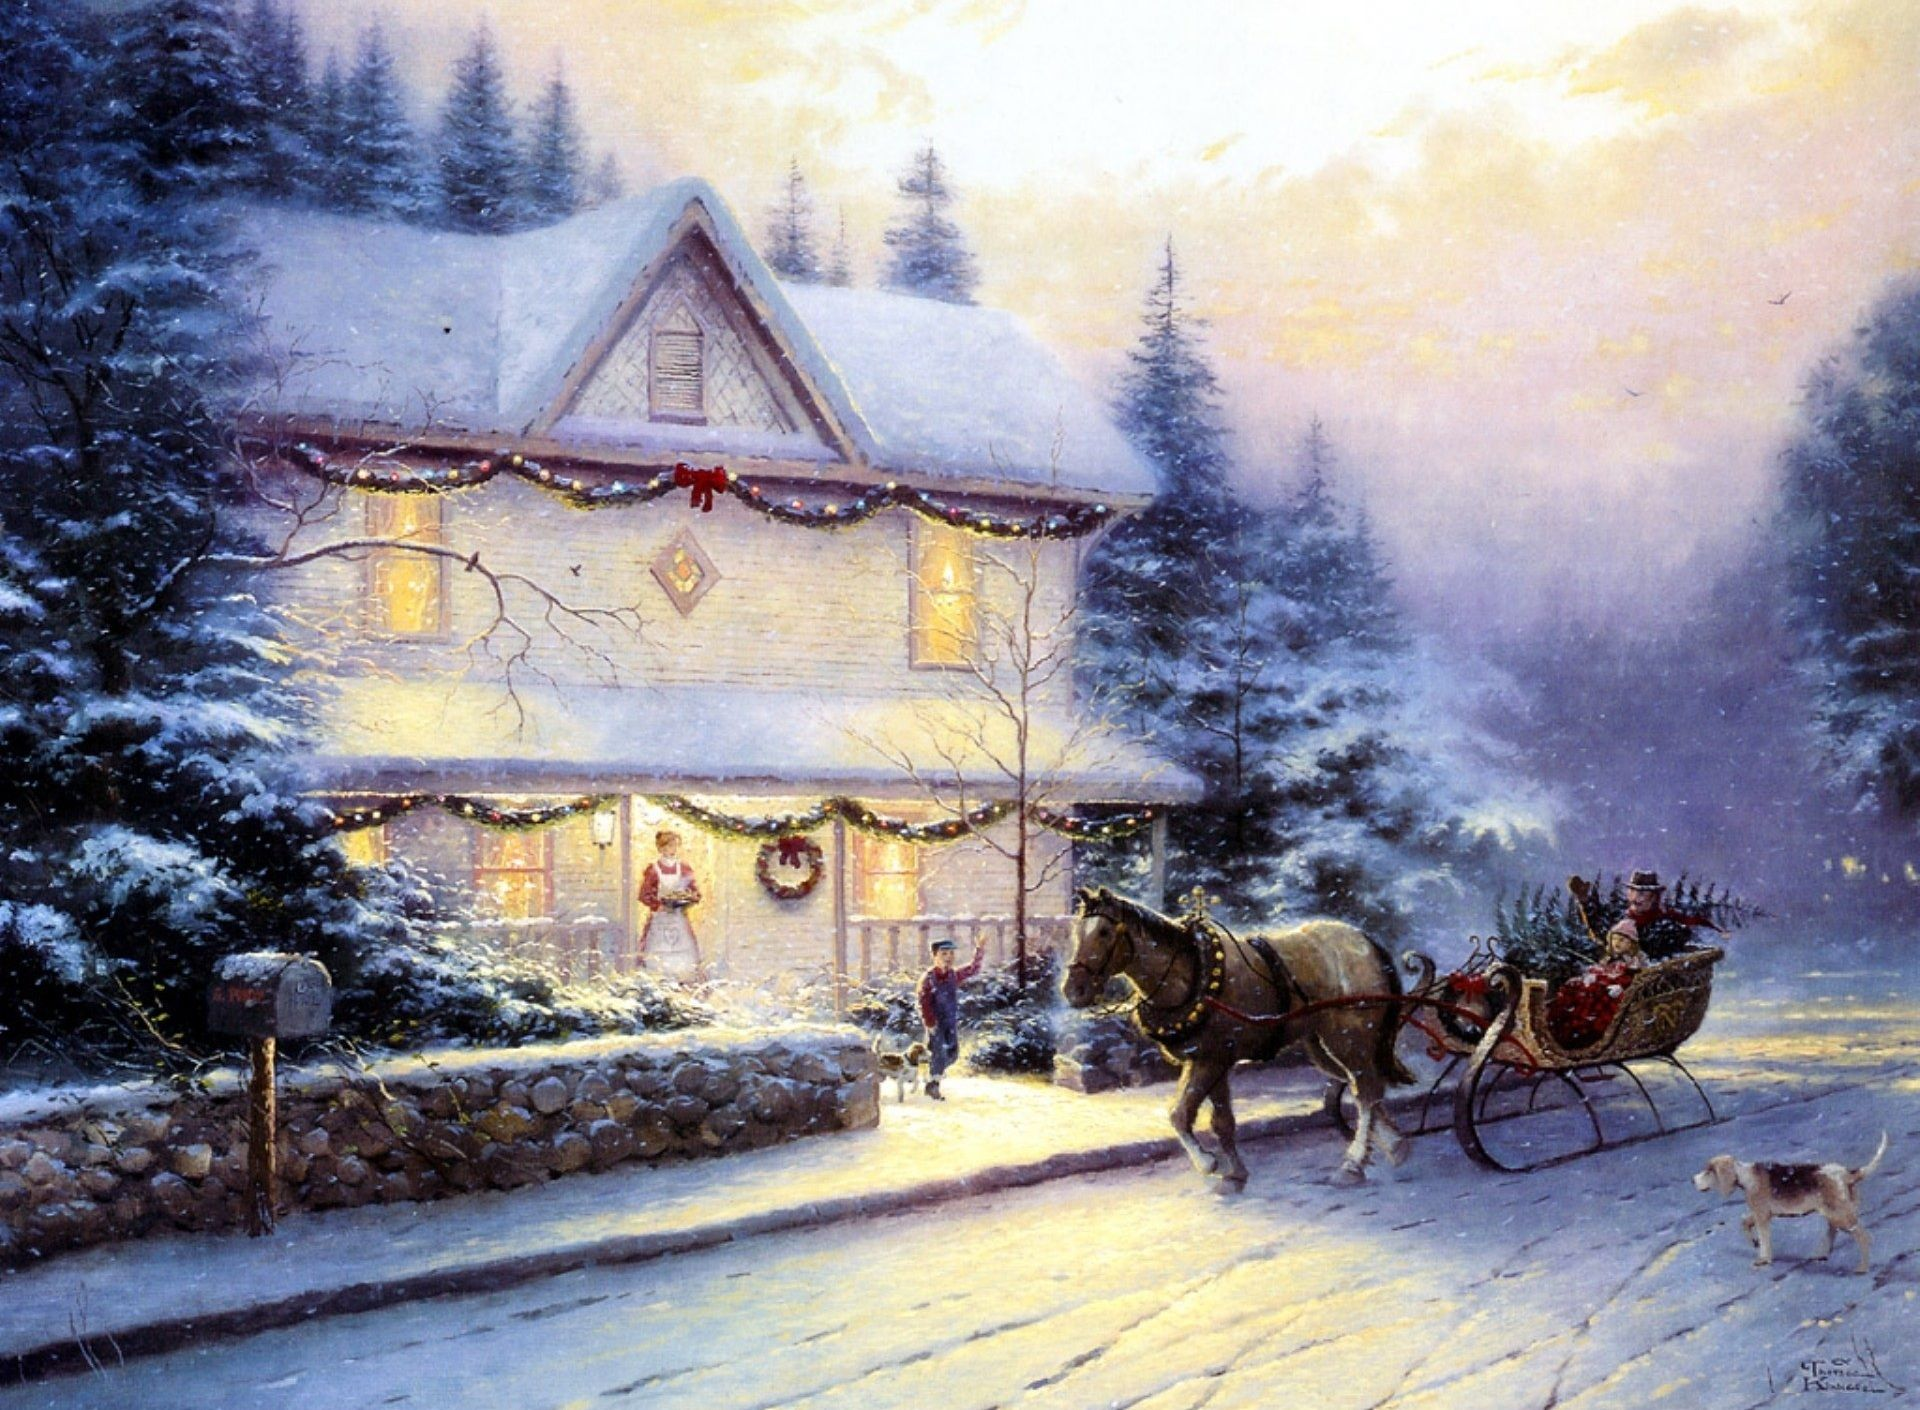 Christmas house painting - Best And Famous Christmas Painting Wallpapers For Kids Free Download Jpg Jpeg Grafik 1920 1410 Pixel Oil Color Pinterest Thomas Kinkade And